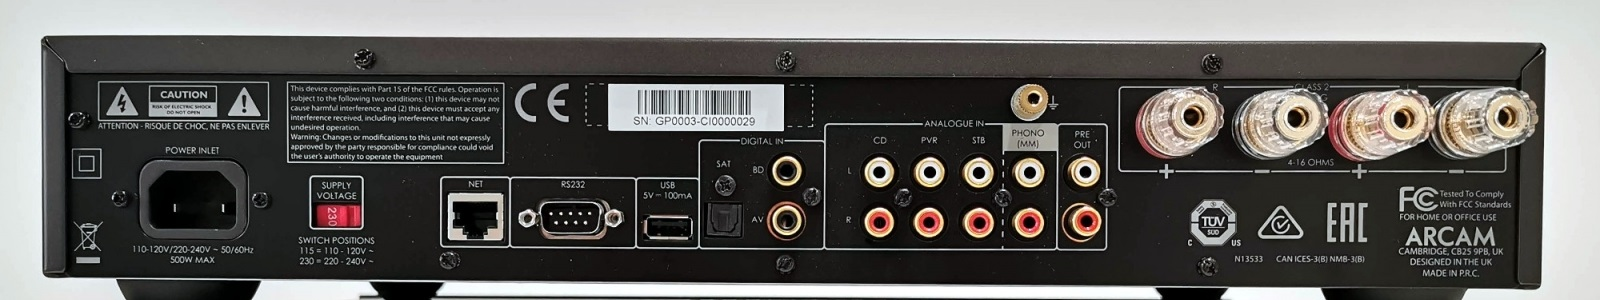 arcam_sa20_and_sa10_rear__large_full.jpg